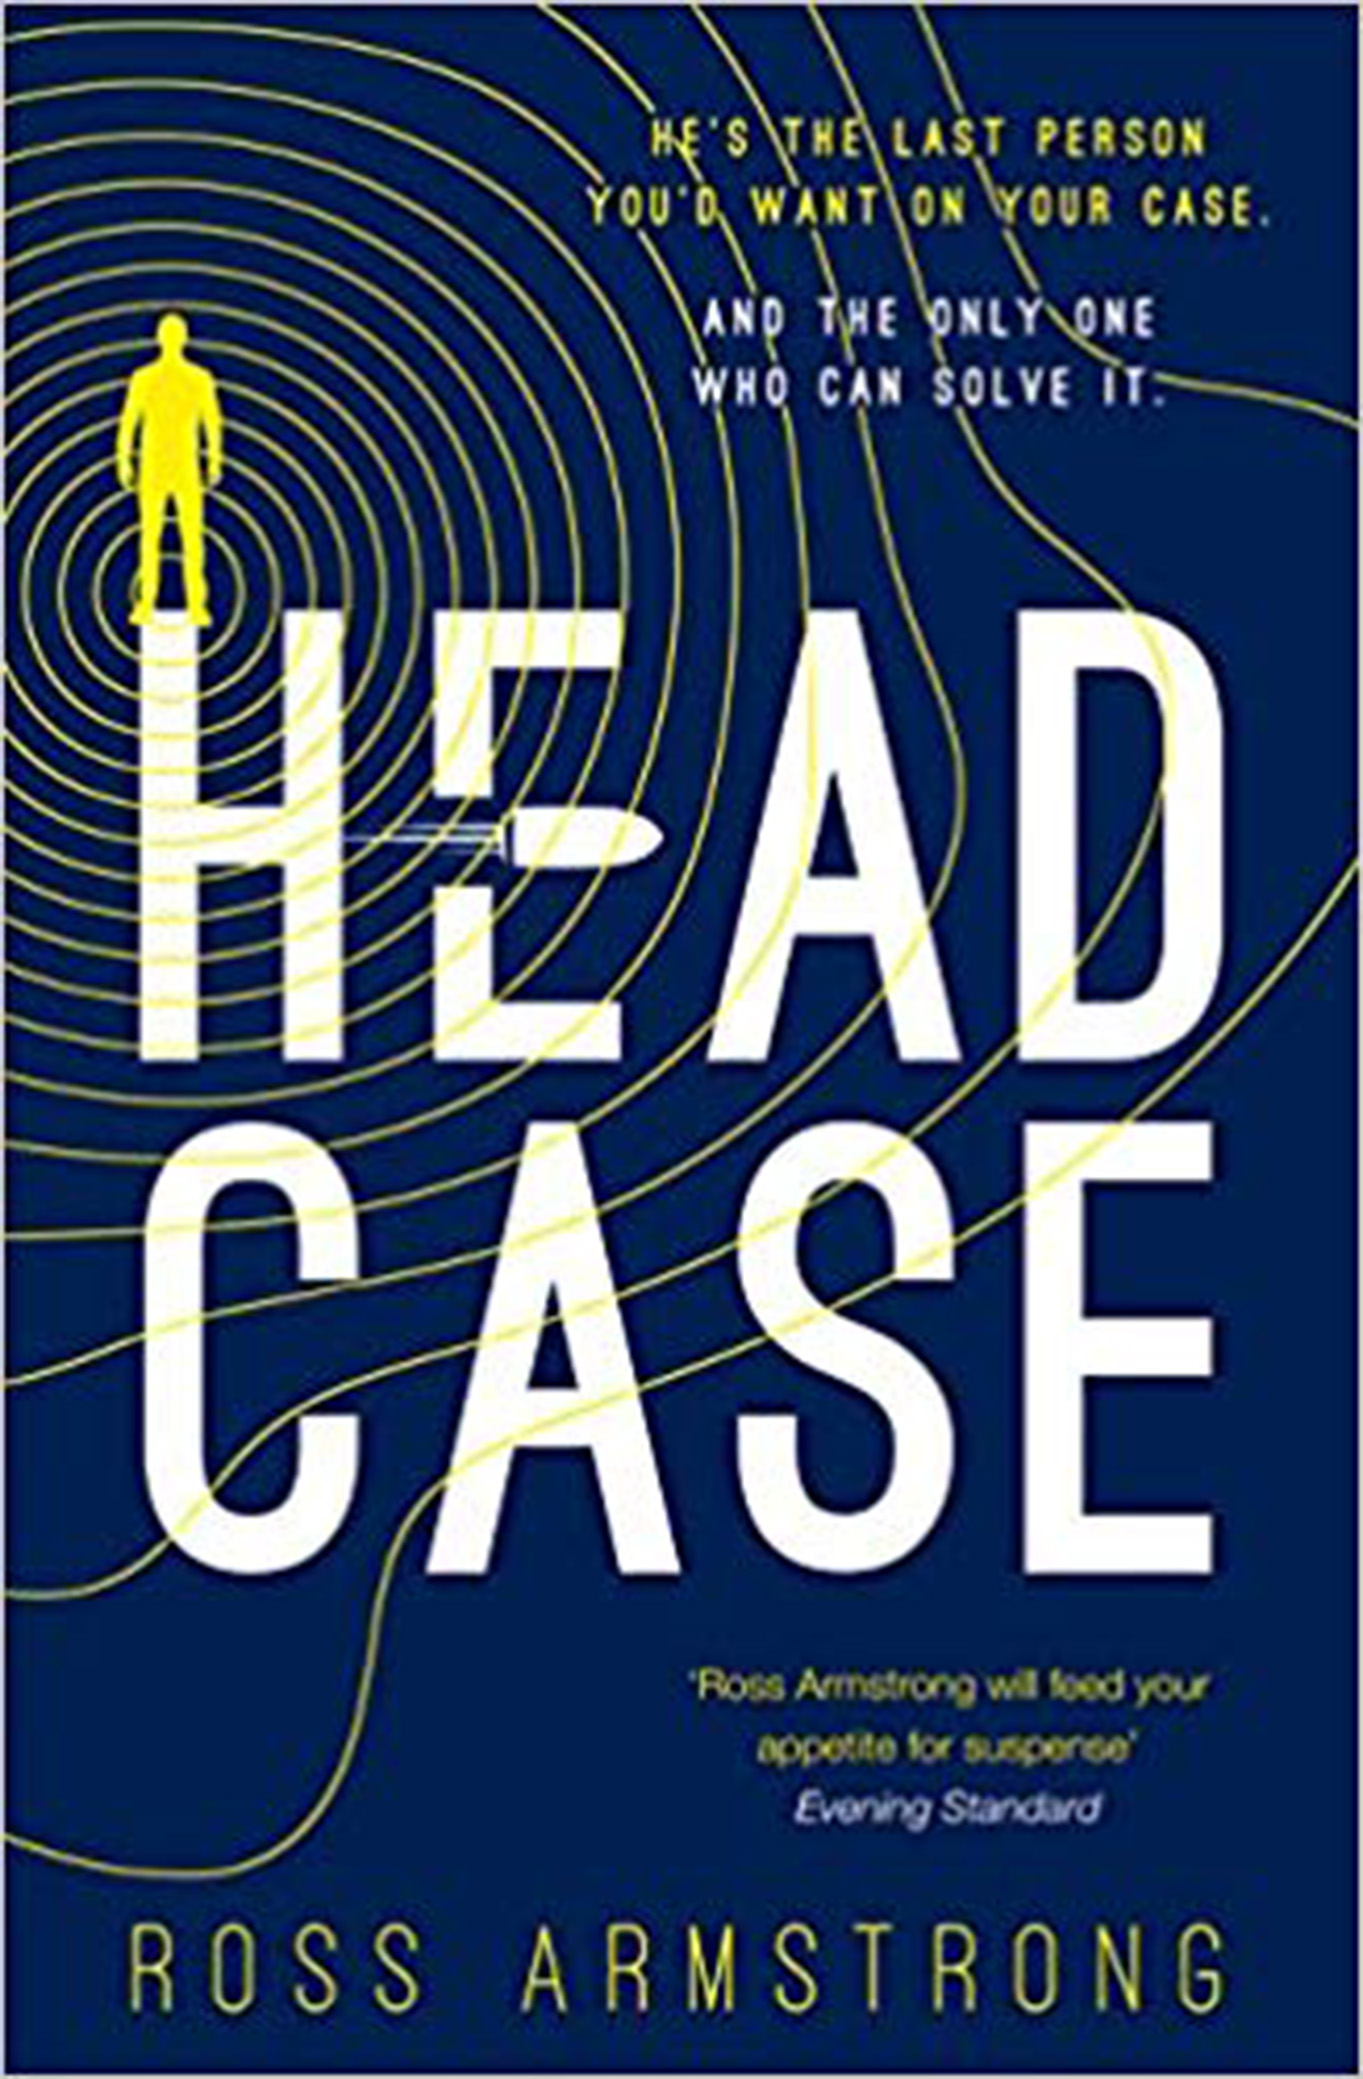 Head Case - Ross Armstrong